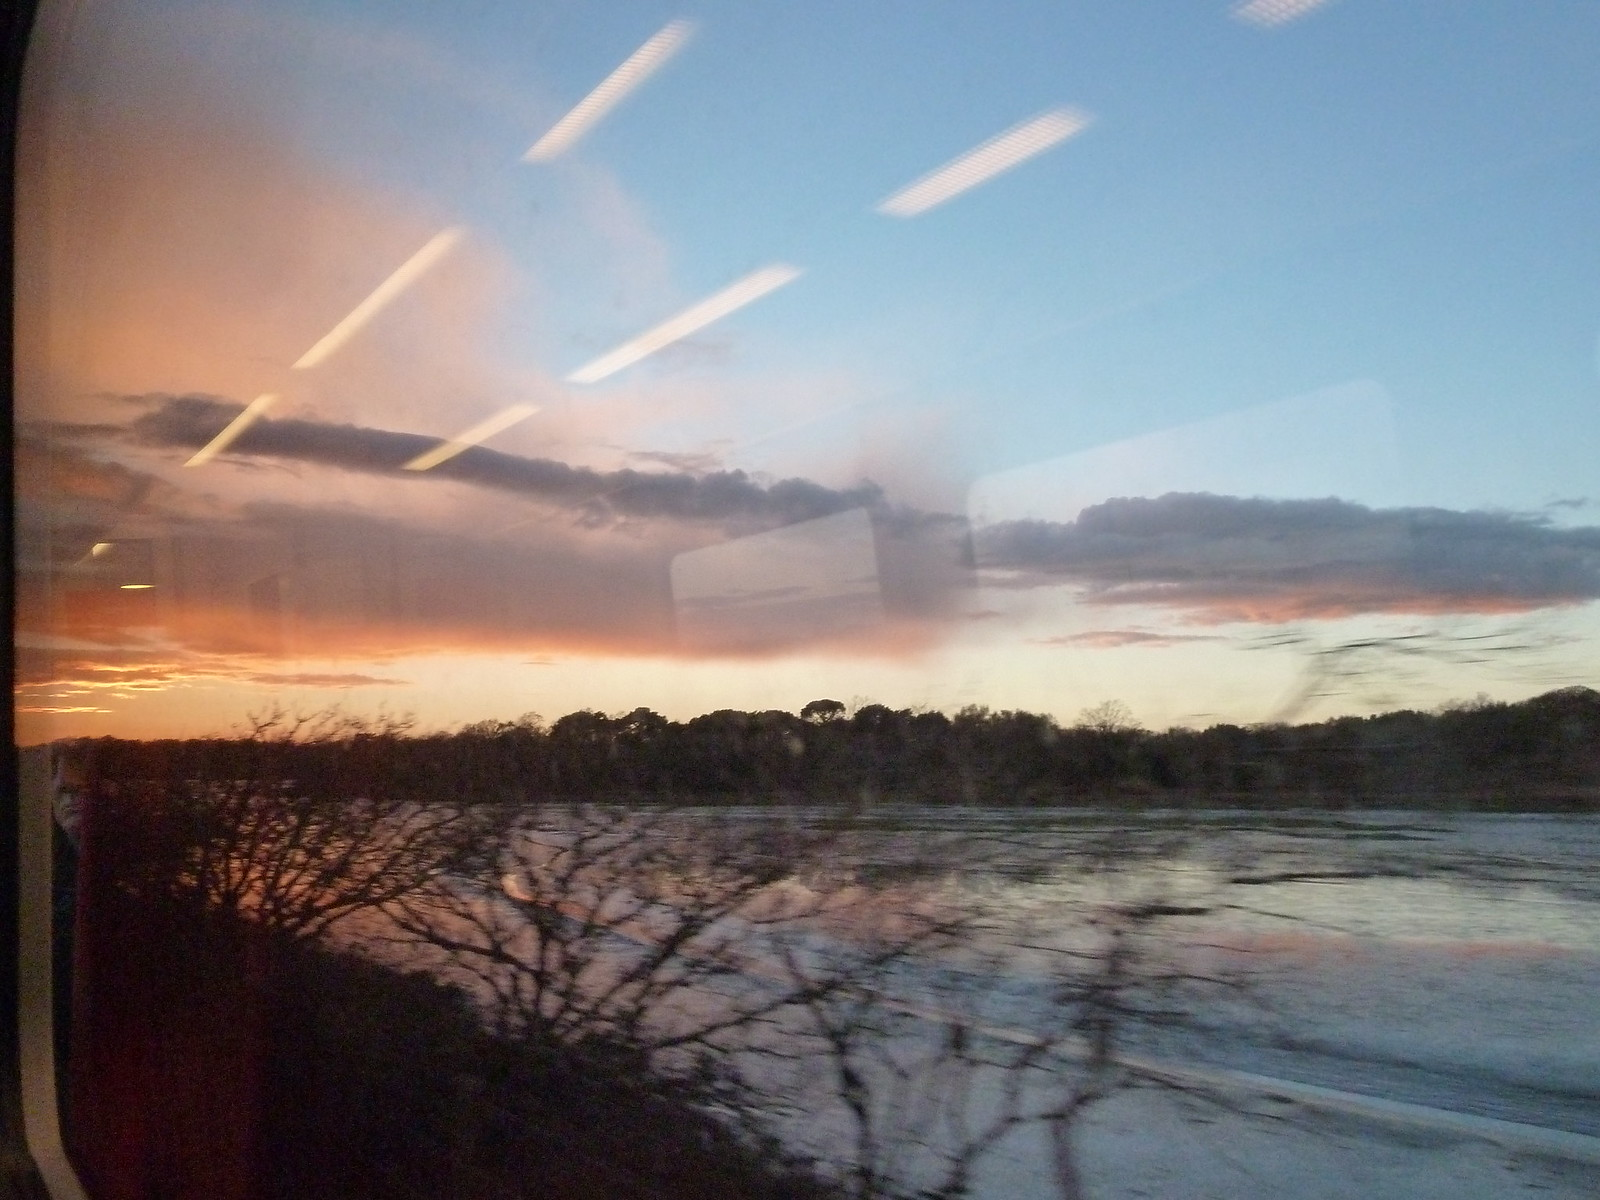 photo from walk From the train: Dorset landscape at sundown, swcwalk275.